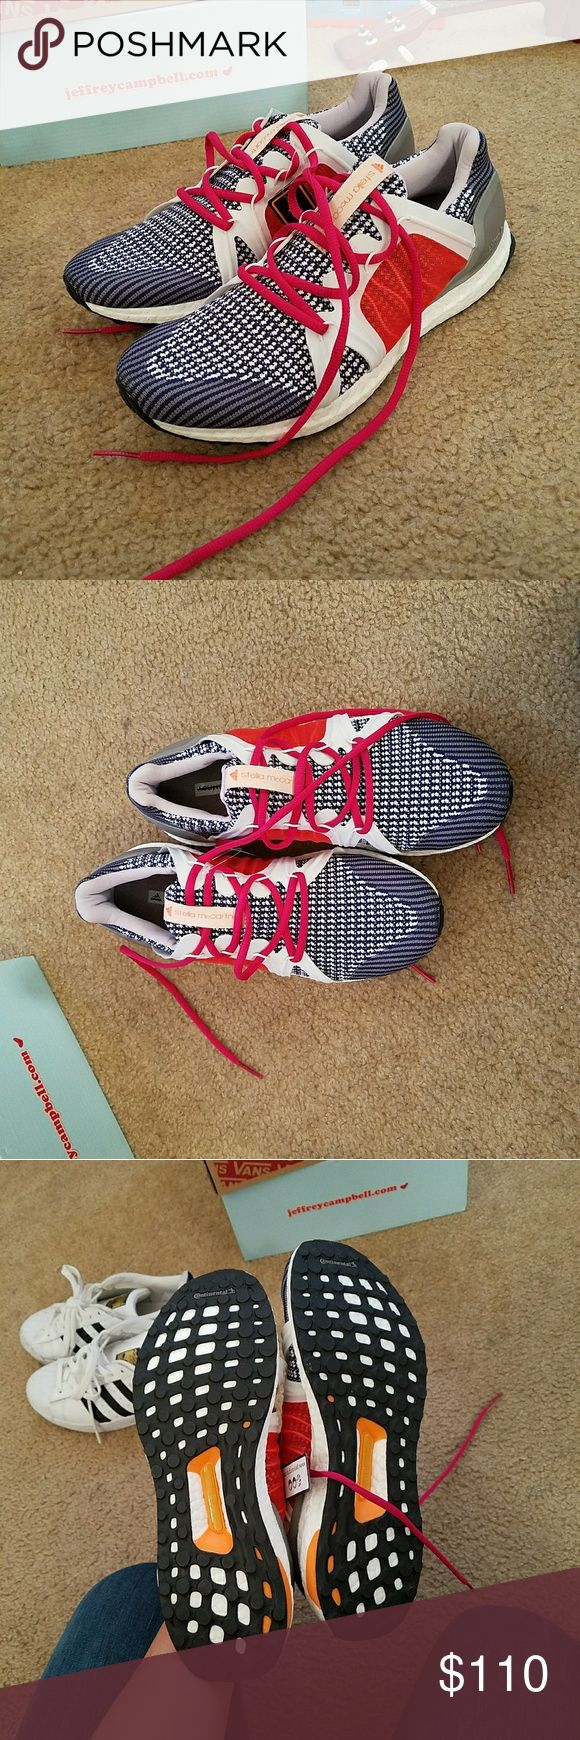 Stella MacCartney Adidas Ultra Boost New with tag, never worn Adidas by Stella McCartney Shoes Athletic Shoes